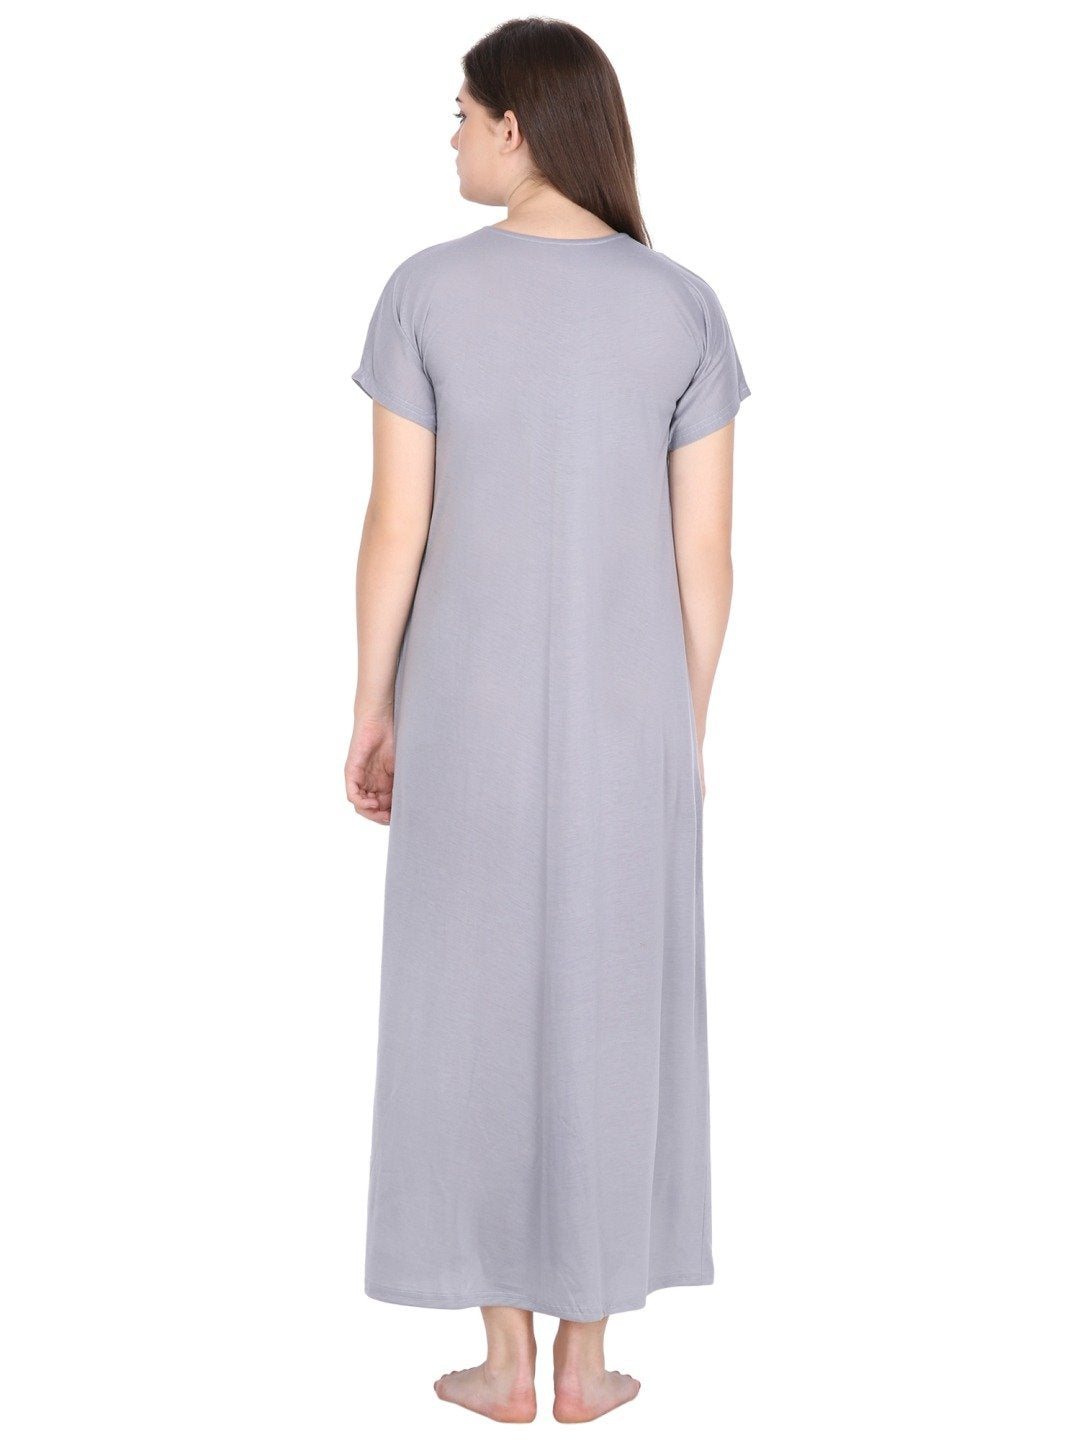 Klamotten Women's Viscose Nightdress L2Z